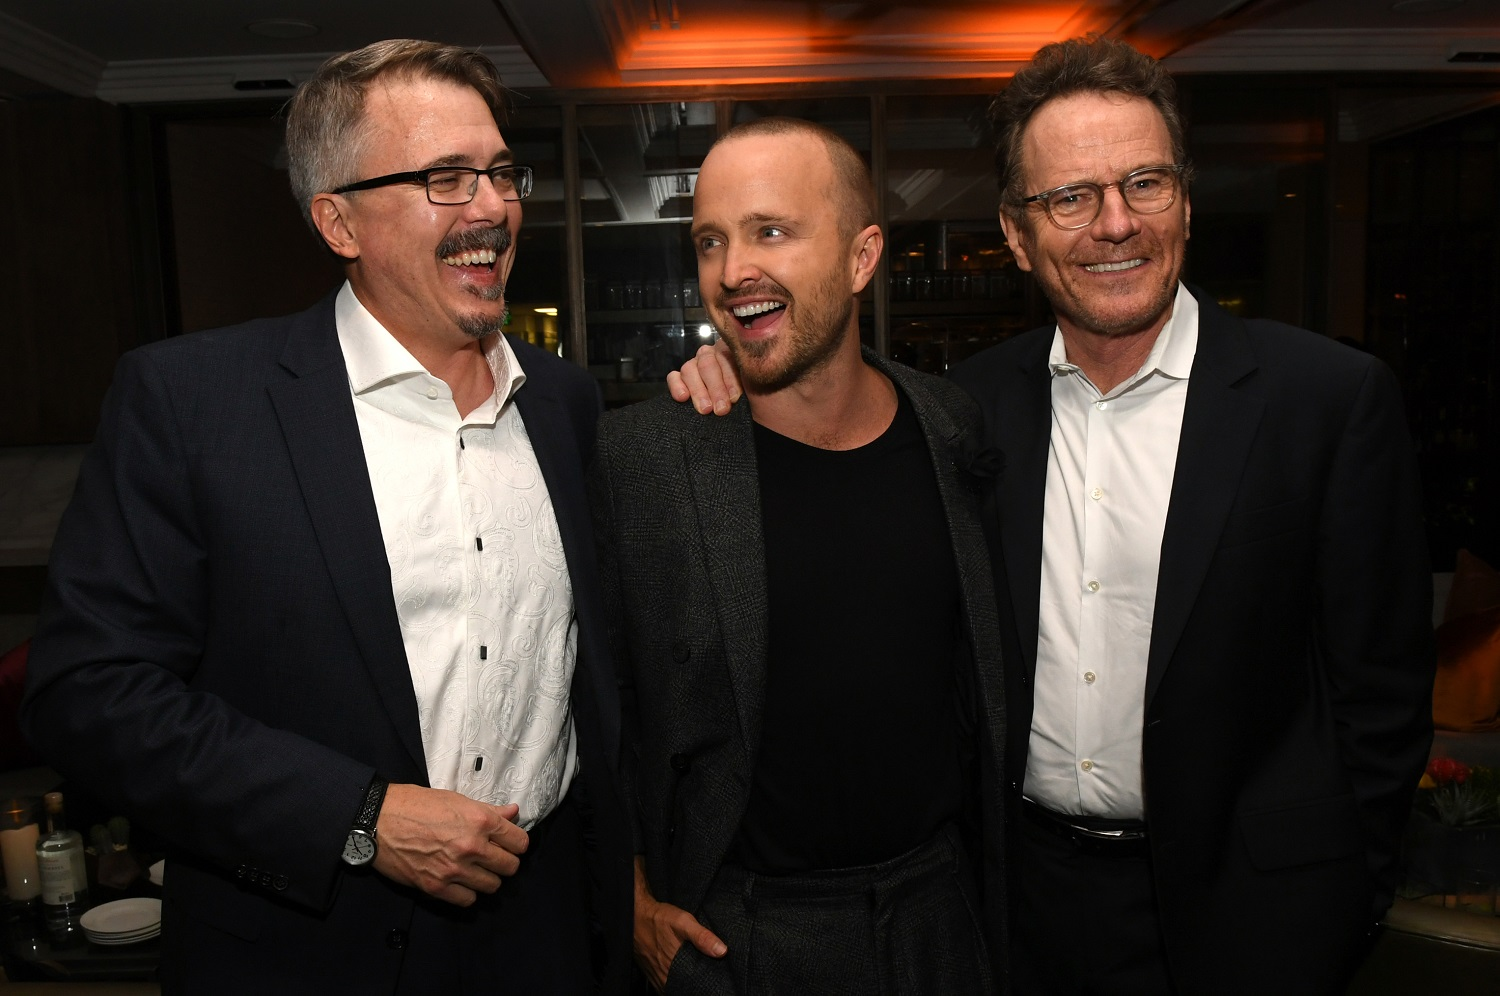 Vince Gilligan, Aaron Paul, and Bryan Cranston of Breaking Bad -- Vince Gilligan's mother hated the Breaking Bad finale